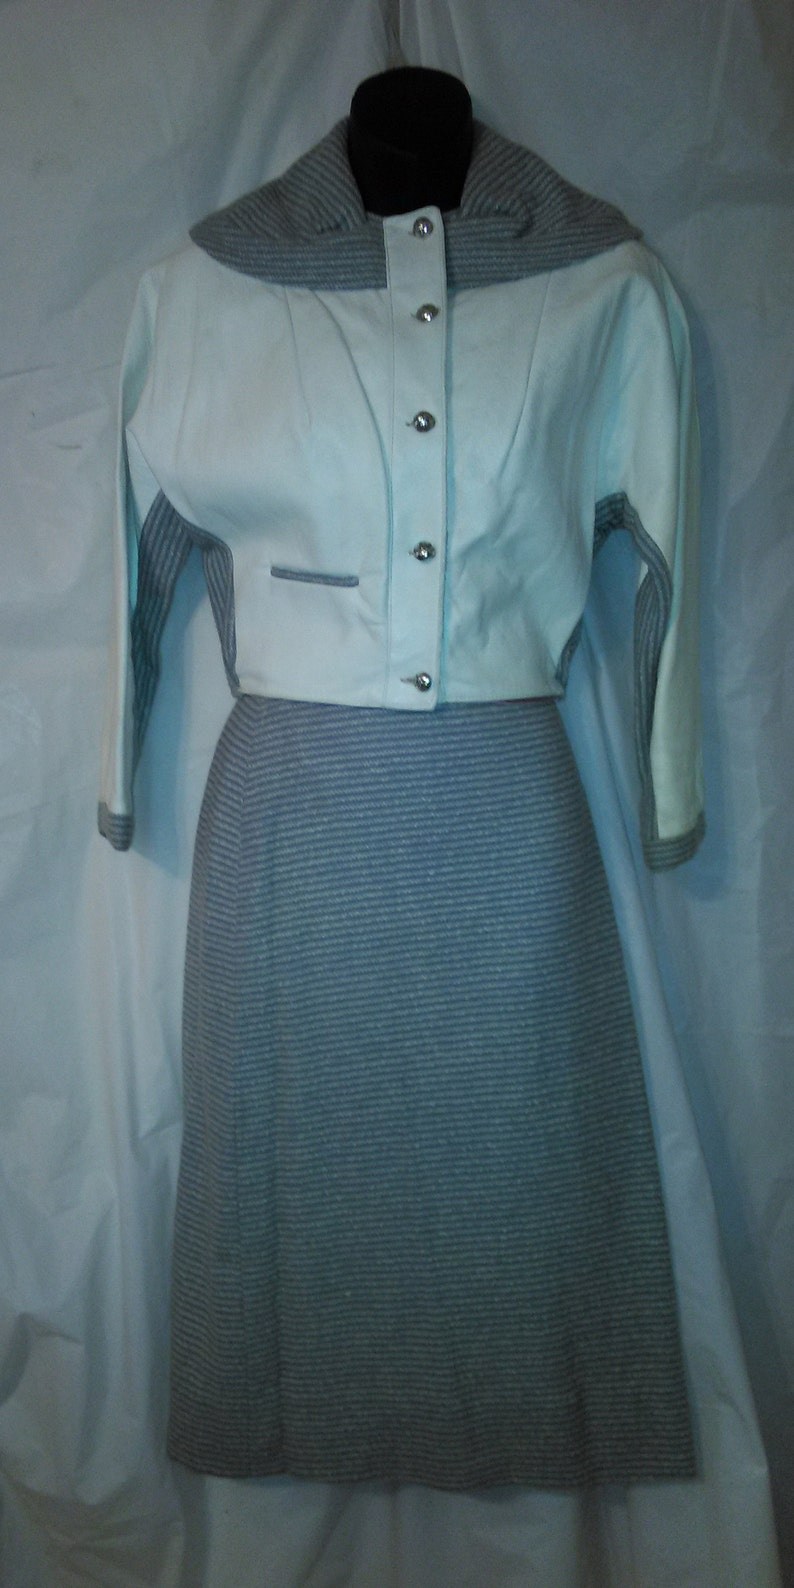 BIG ESTATE SALE-70s Vintage Spring-Fall Suit-Wool Leather-Pencil Skirt-Mod-Size 2-xS-34 Bust-Office HIpster-Secretary-Special Event-